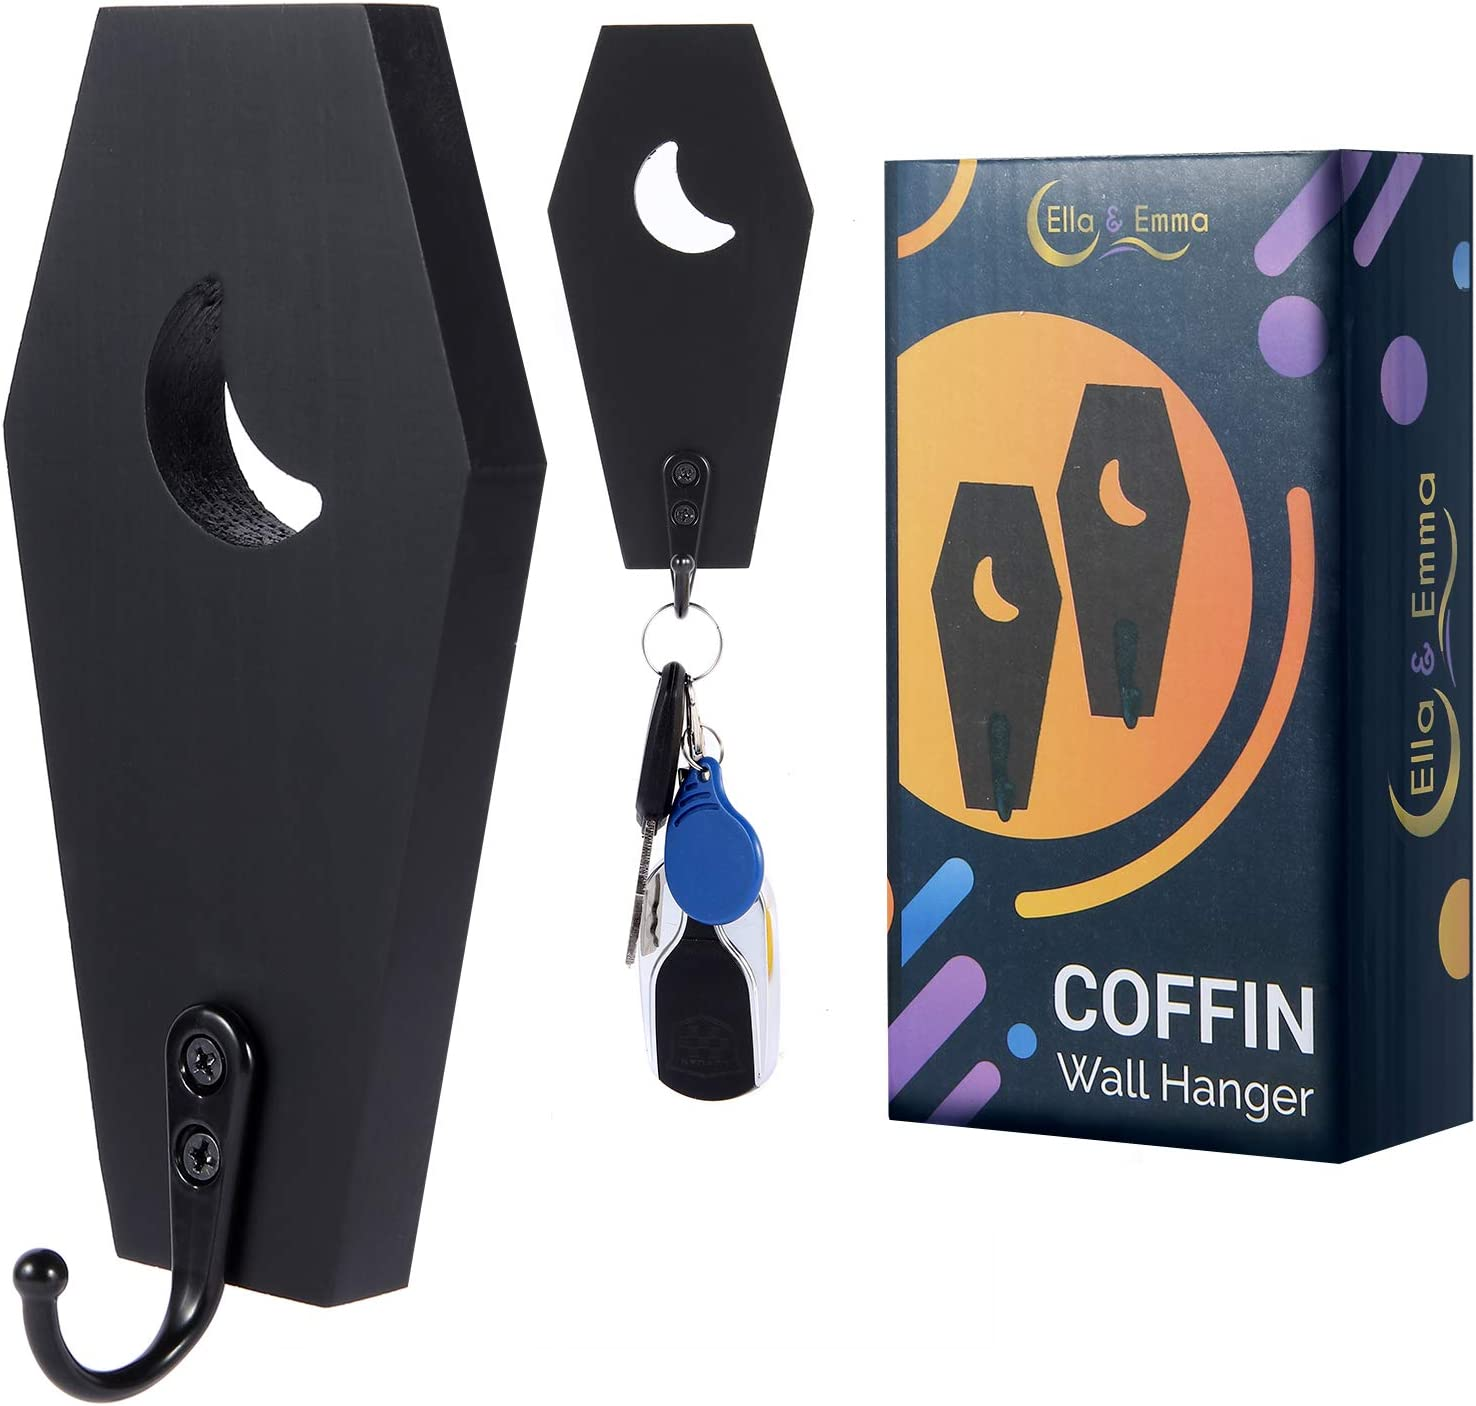 Coffin Key Holder (Pack of 2) Spooky Gothic Decor for Wall - Rustic Black Wooden Hanger Hooks for Keys, Mugs, Purse - Wall Mounted Mini Coffin Hangers Decoration for Moon Shelf, Mirror by Ella & Emma